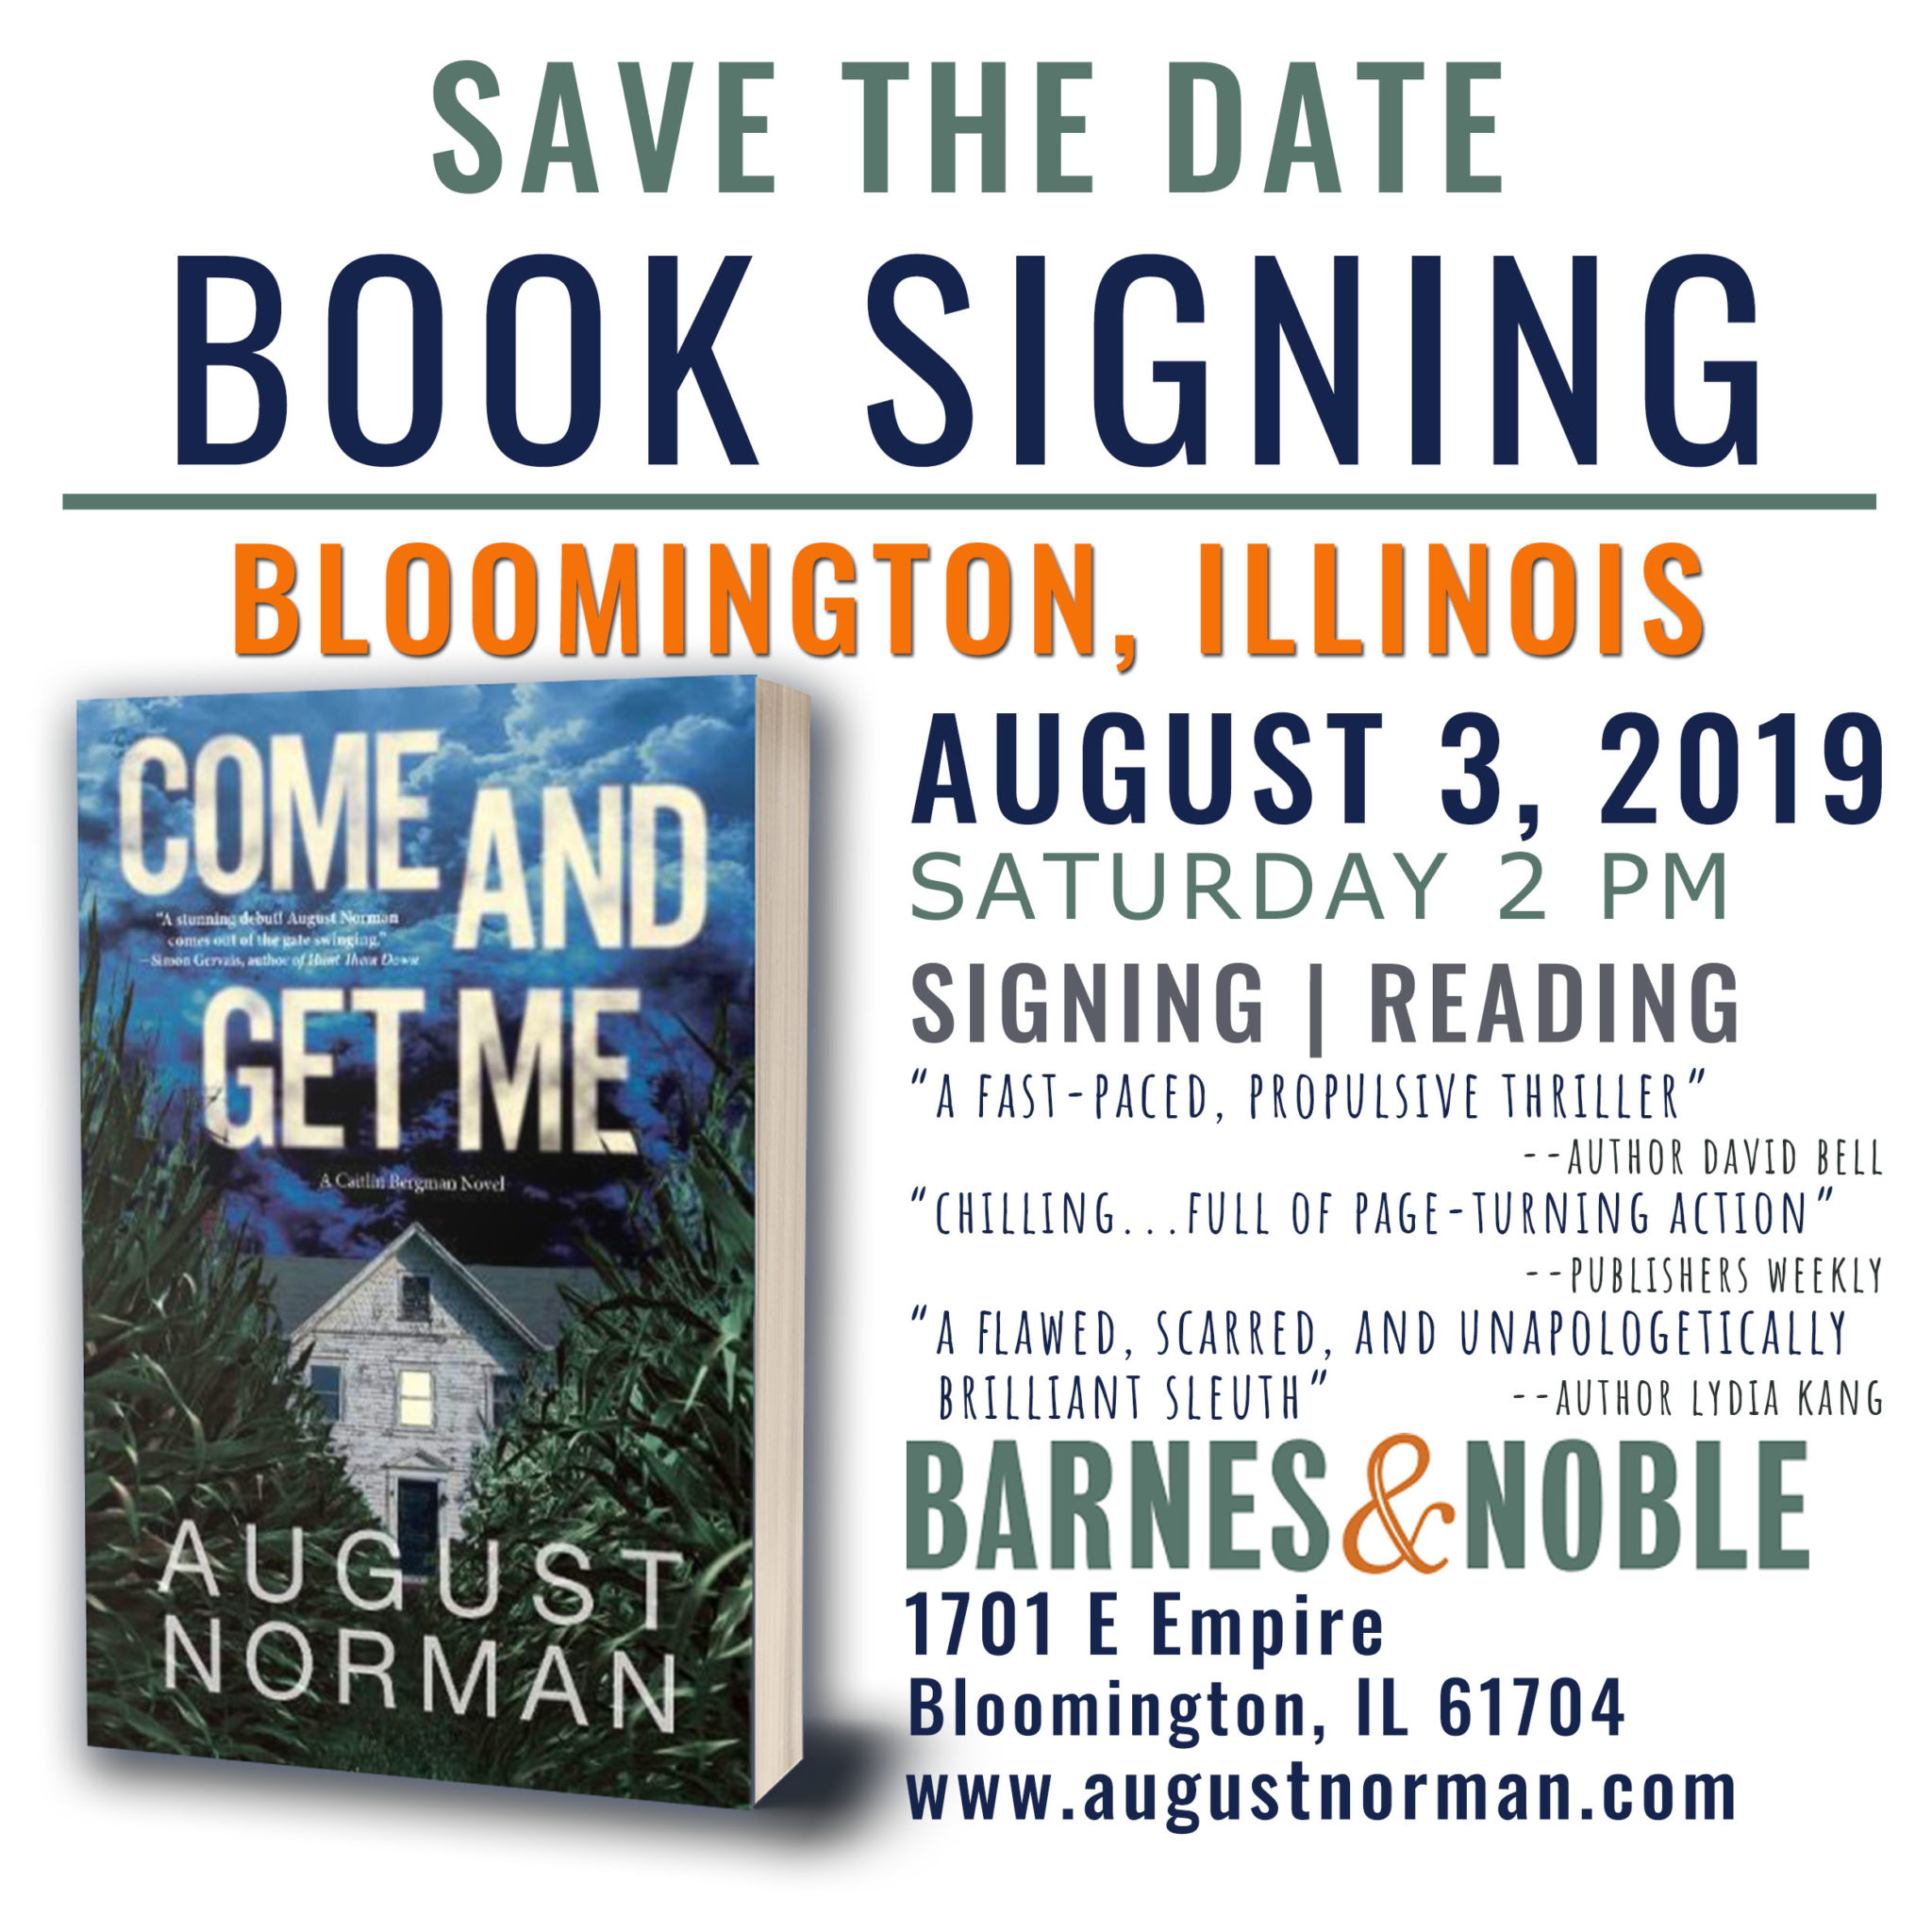 Events Archives - August Norman Books